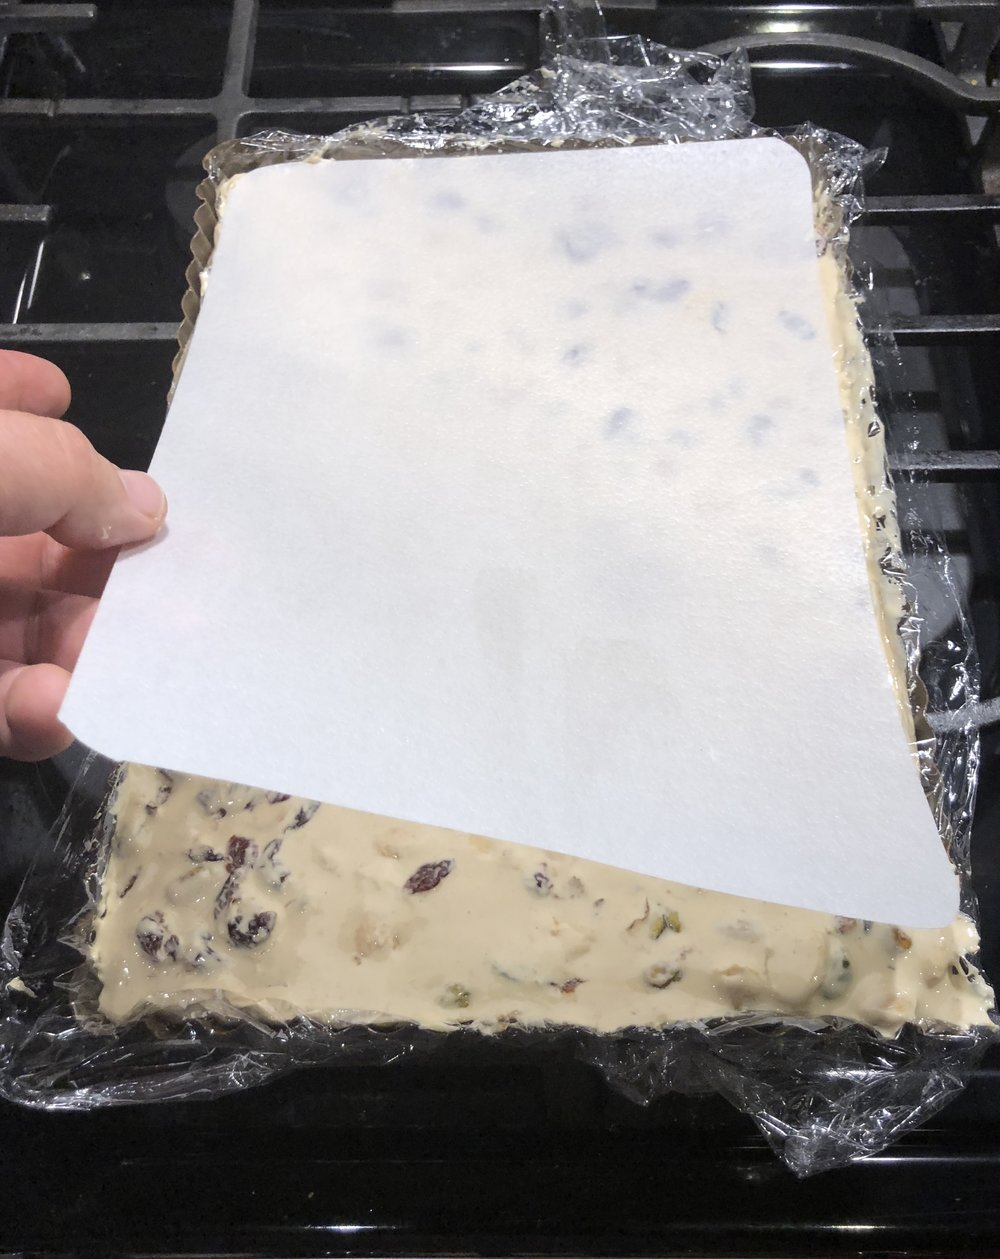 After pressing the torrone into your prepared pan, top off with the second sheet of wafer paper.